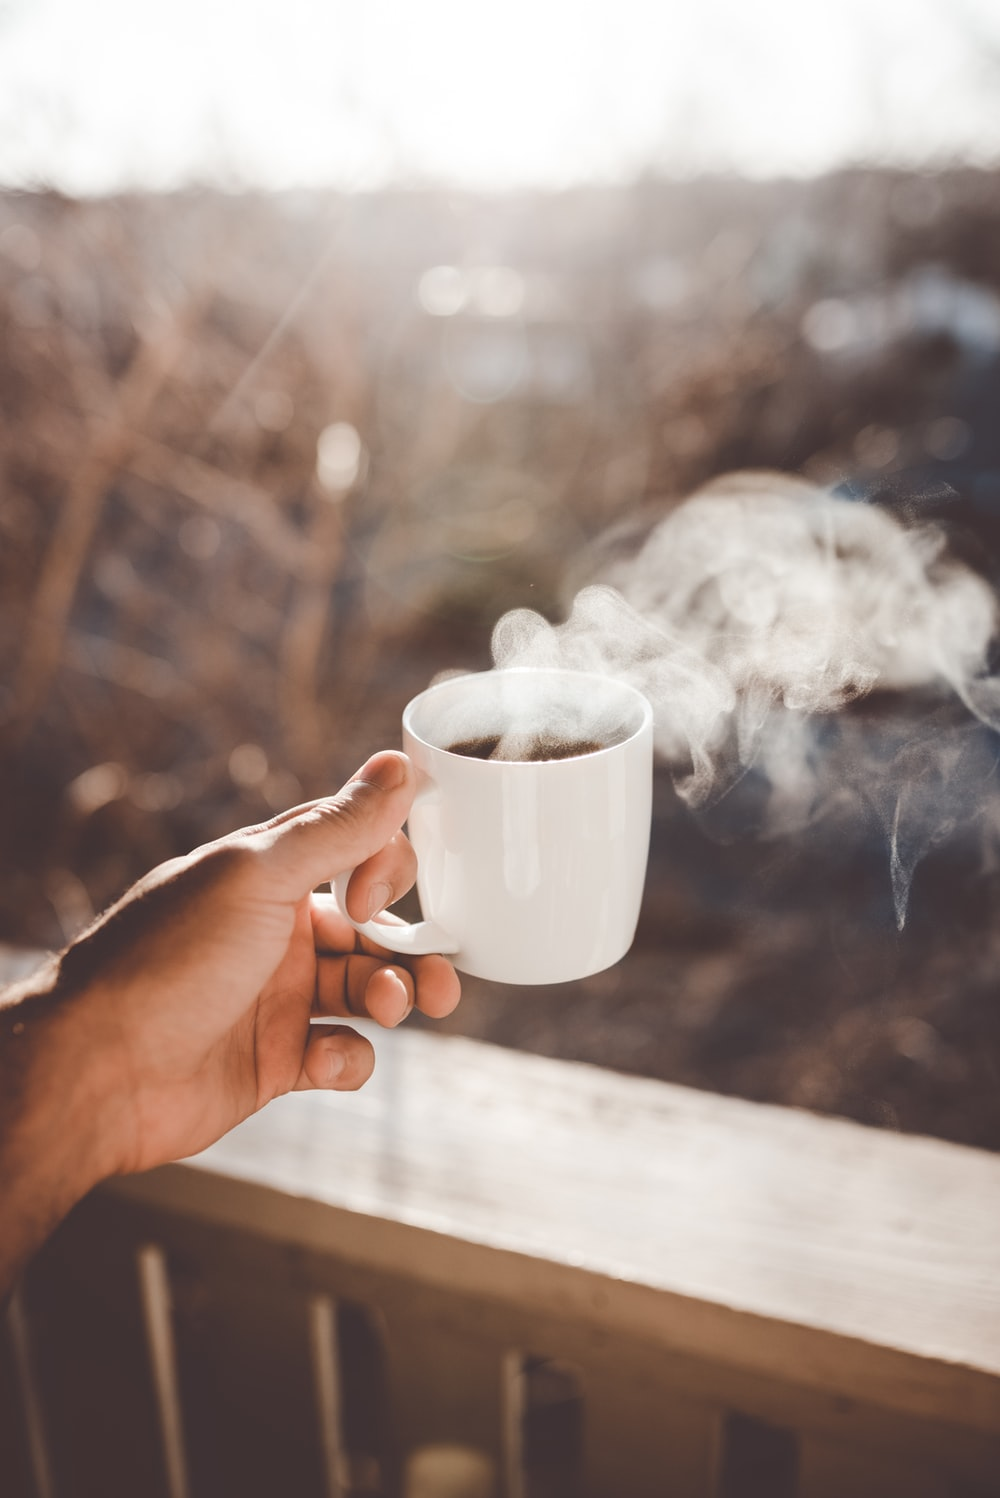 100+ Coffee Pictures | Download Free Images on Unsplash